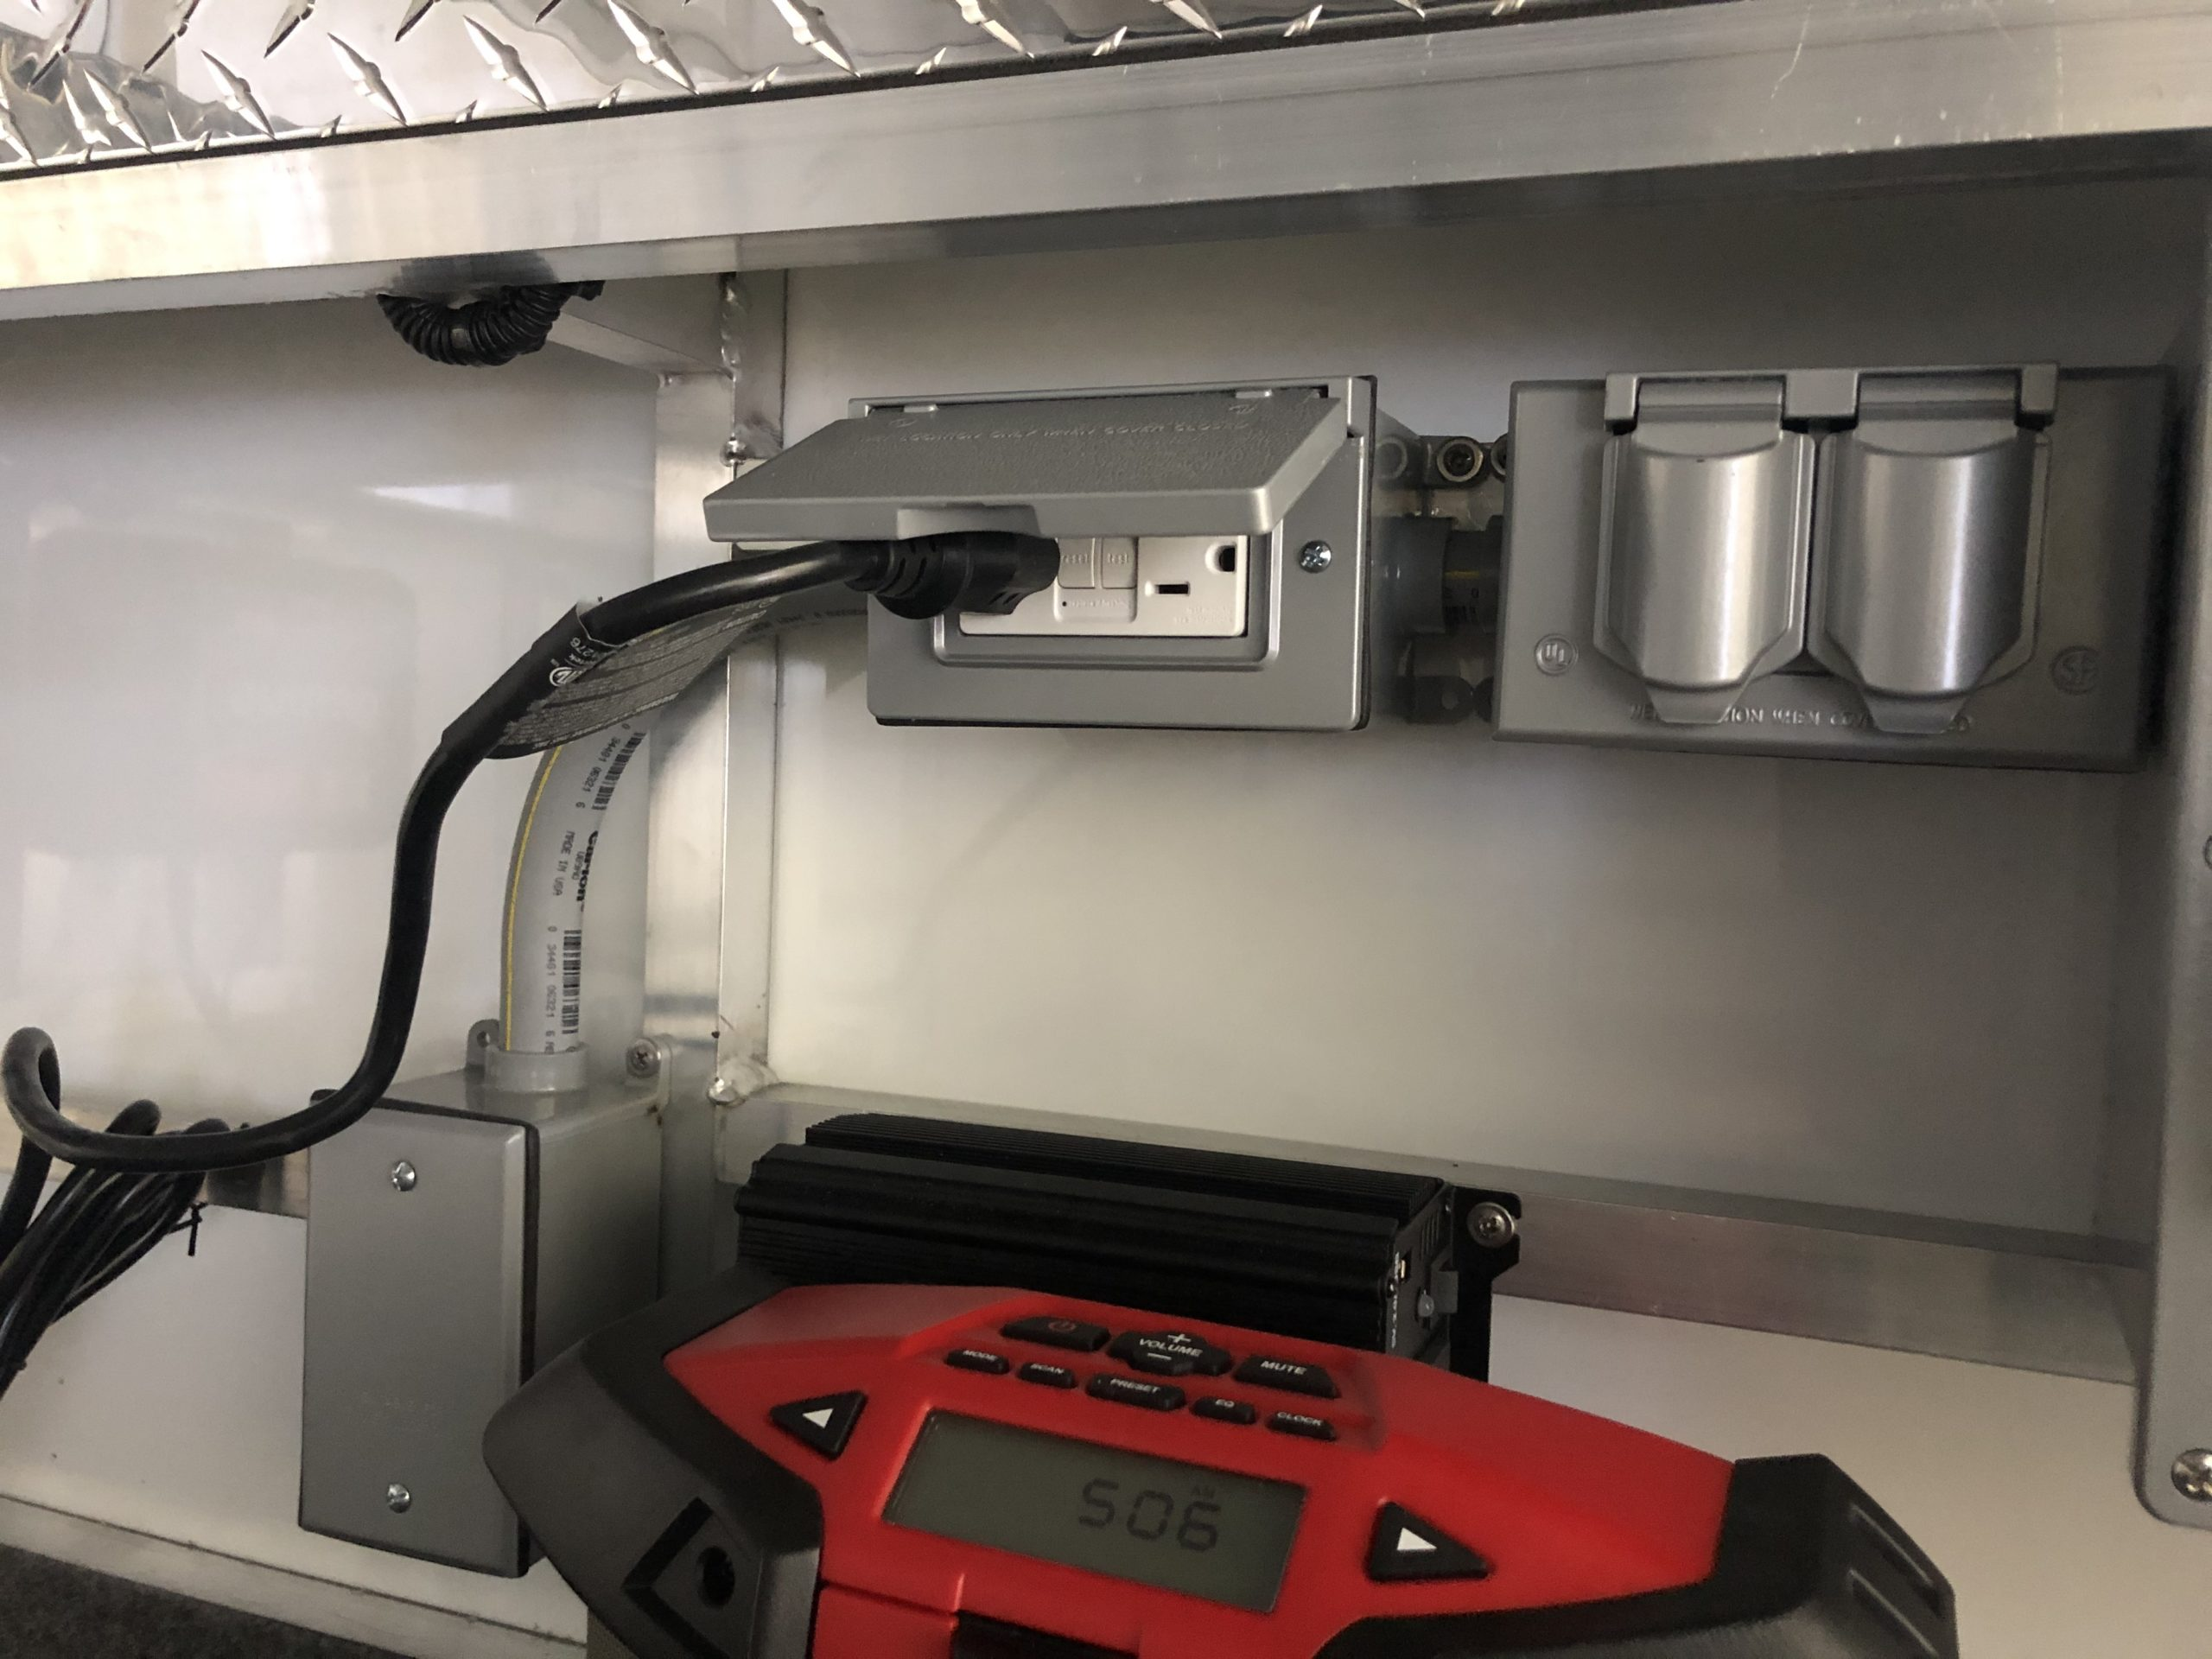 110 Power Center With Two Gfci Protected Outlet Boxes And